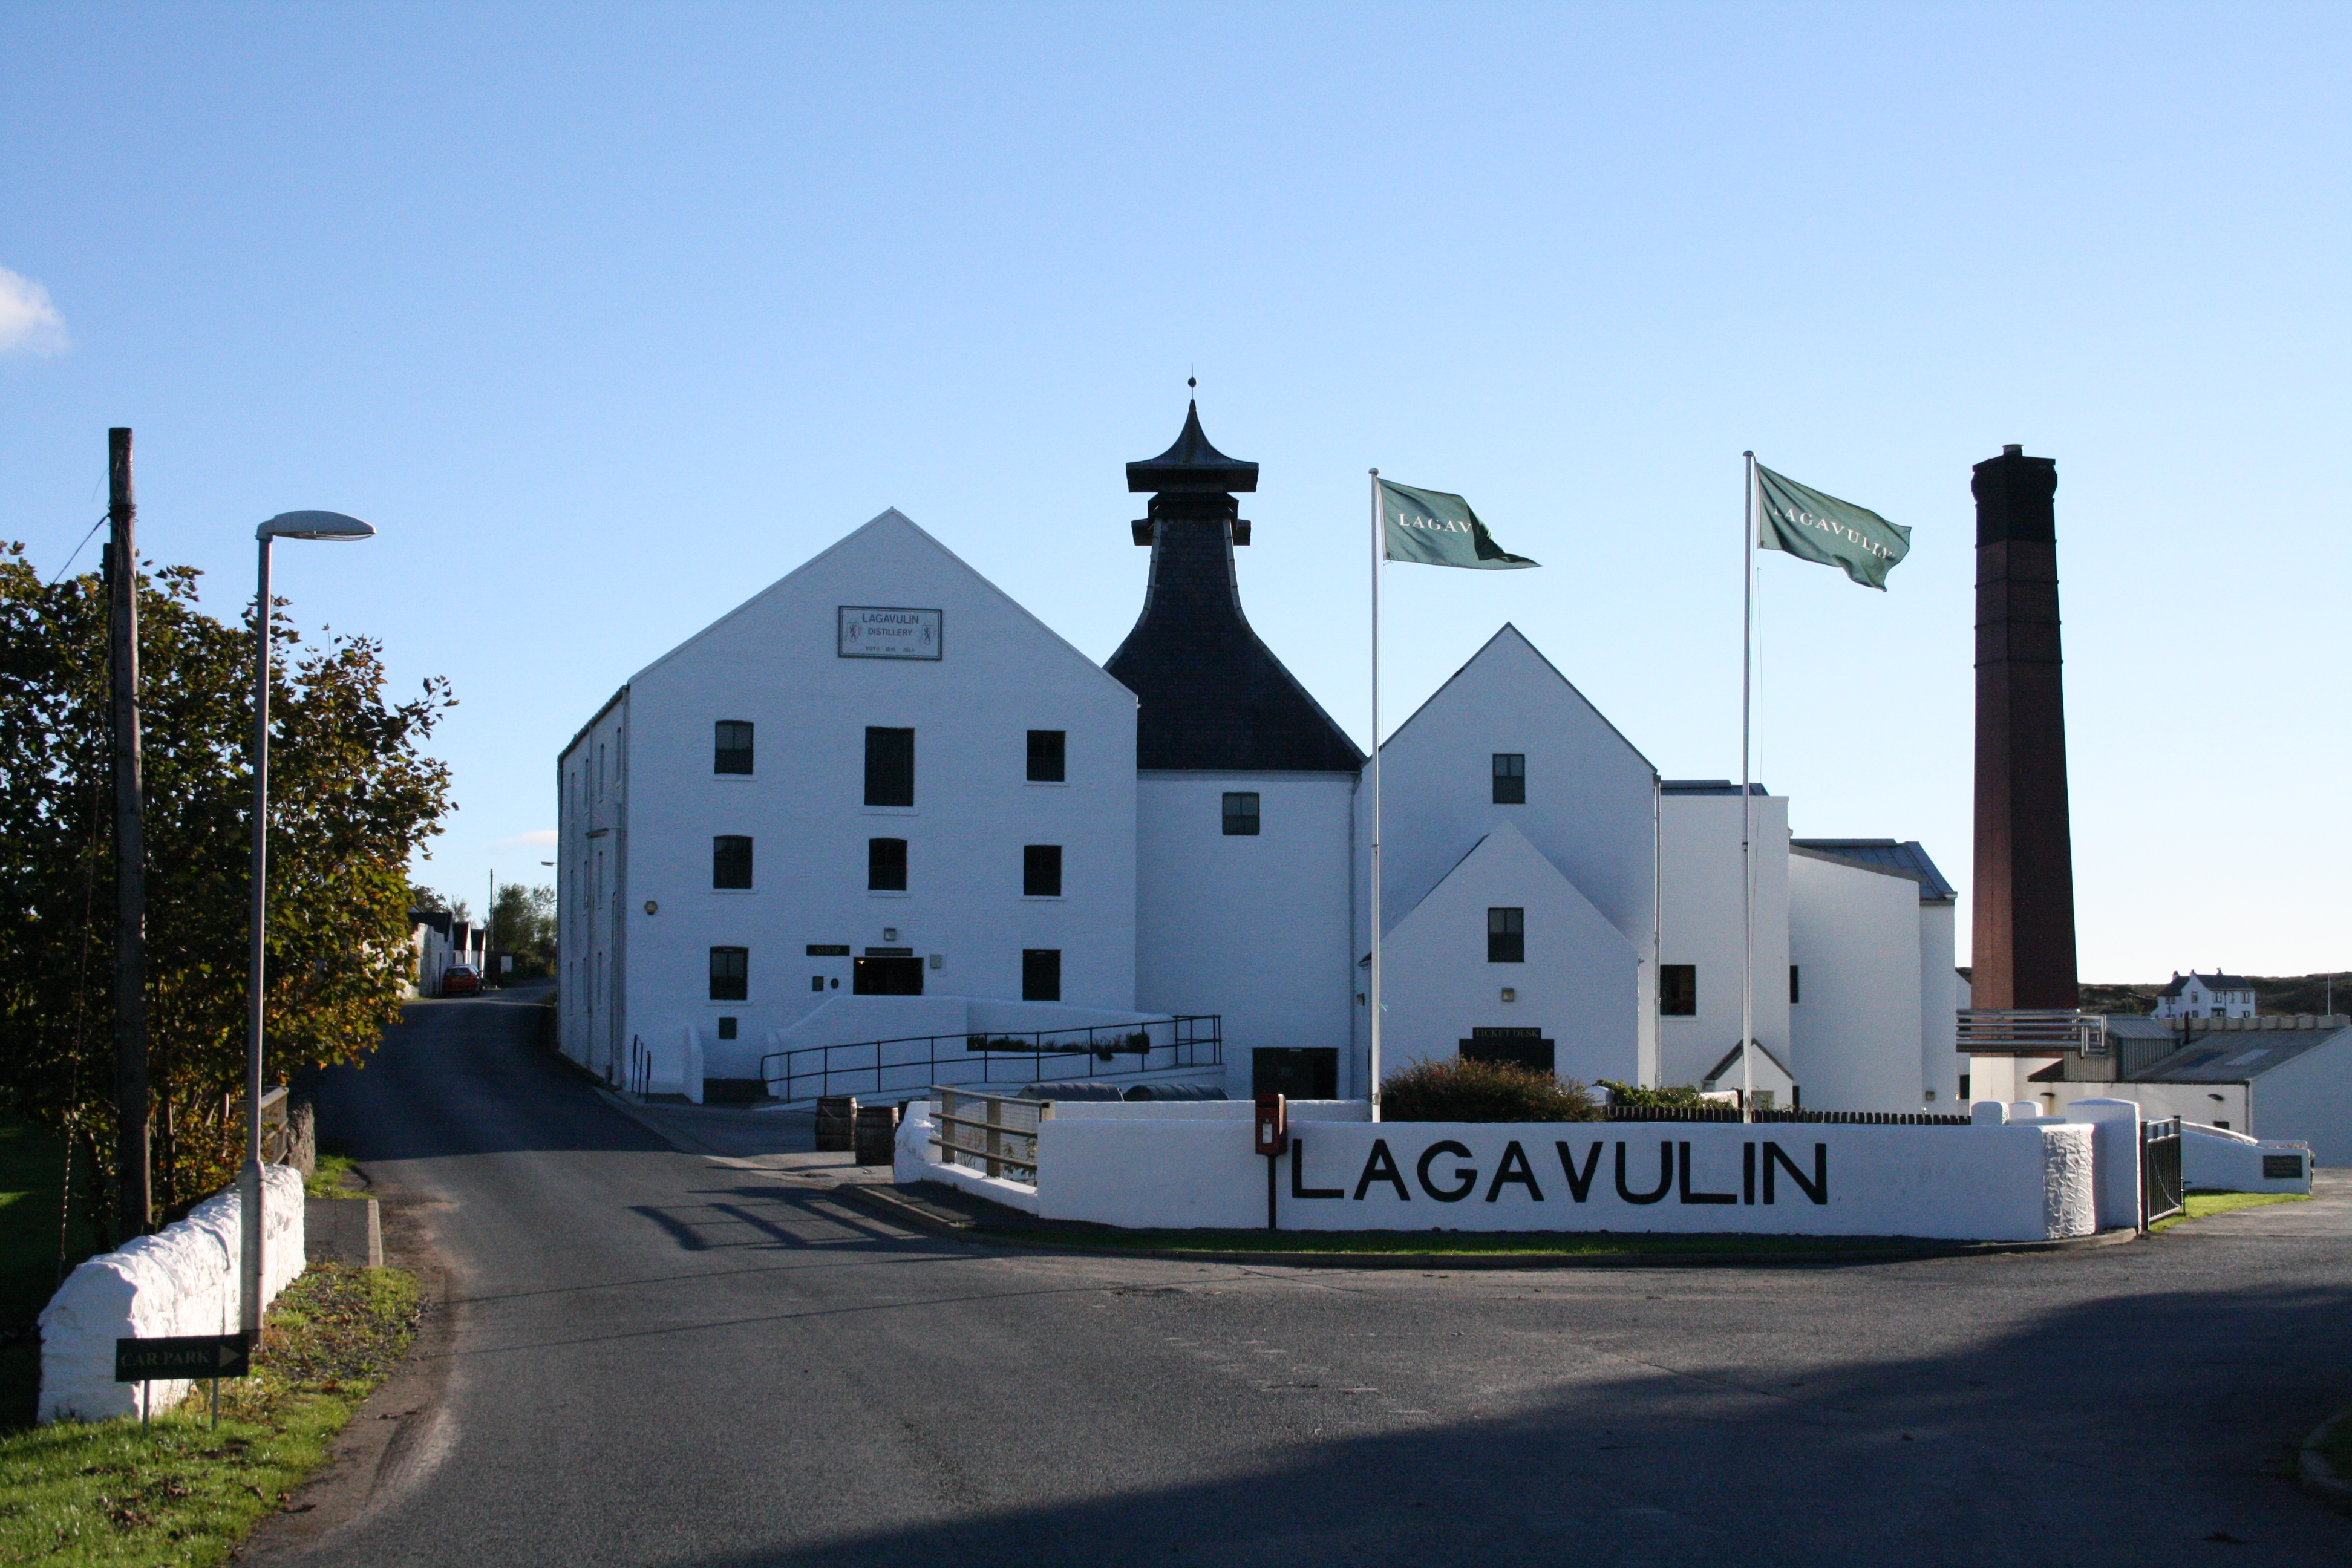 Scotland distillery. Lagavulin